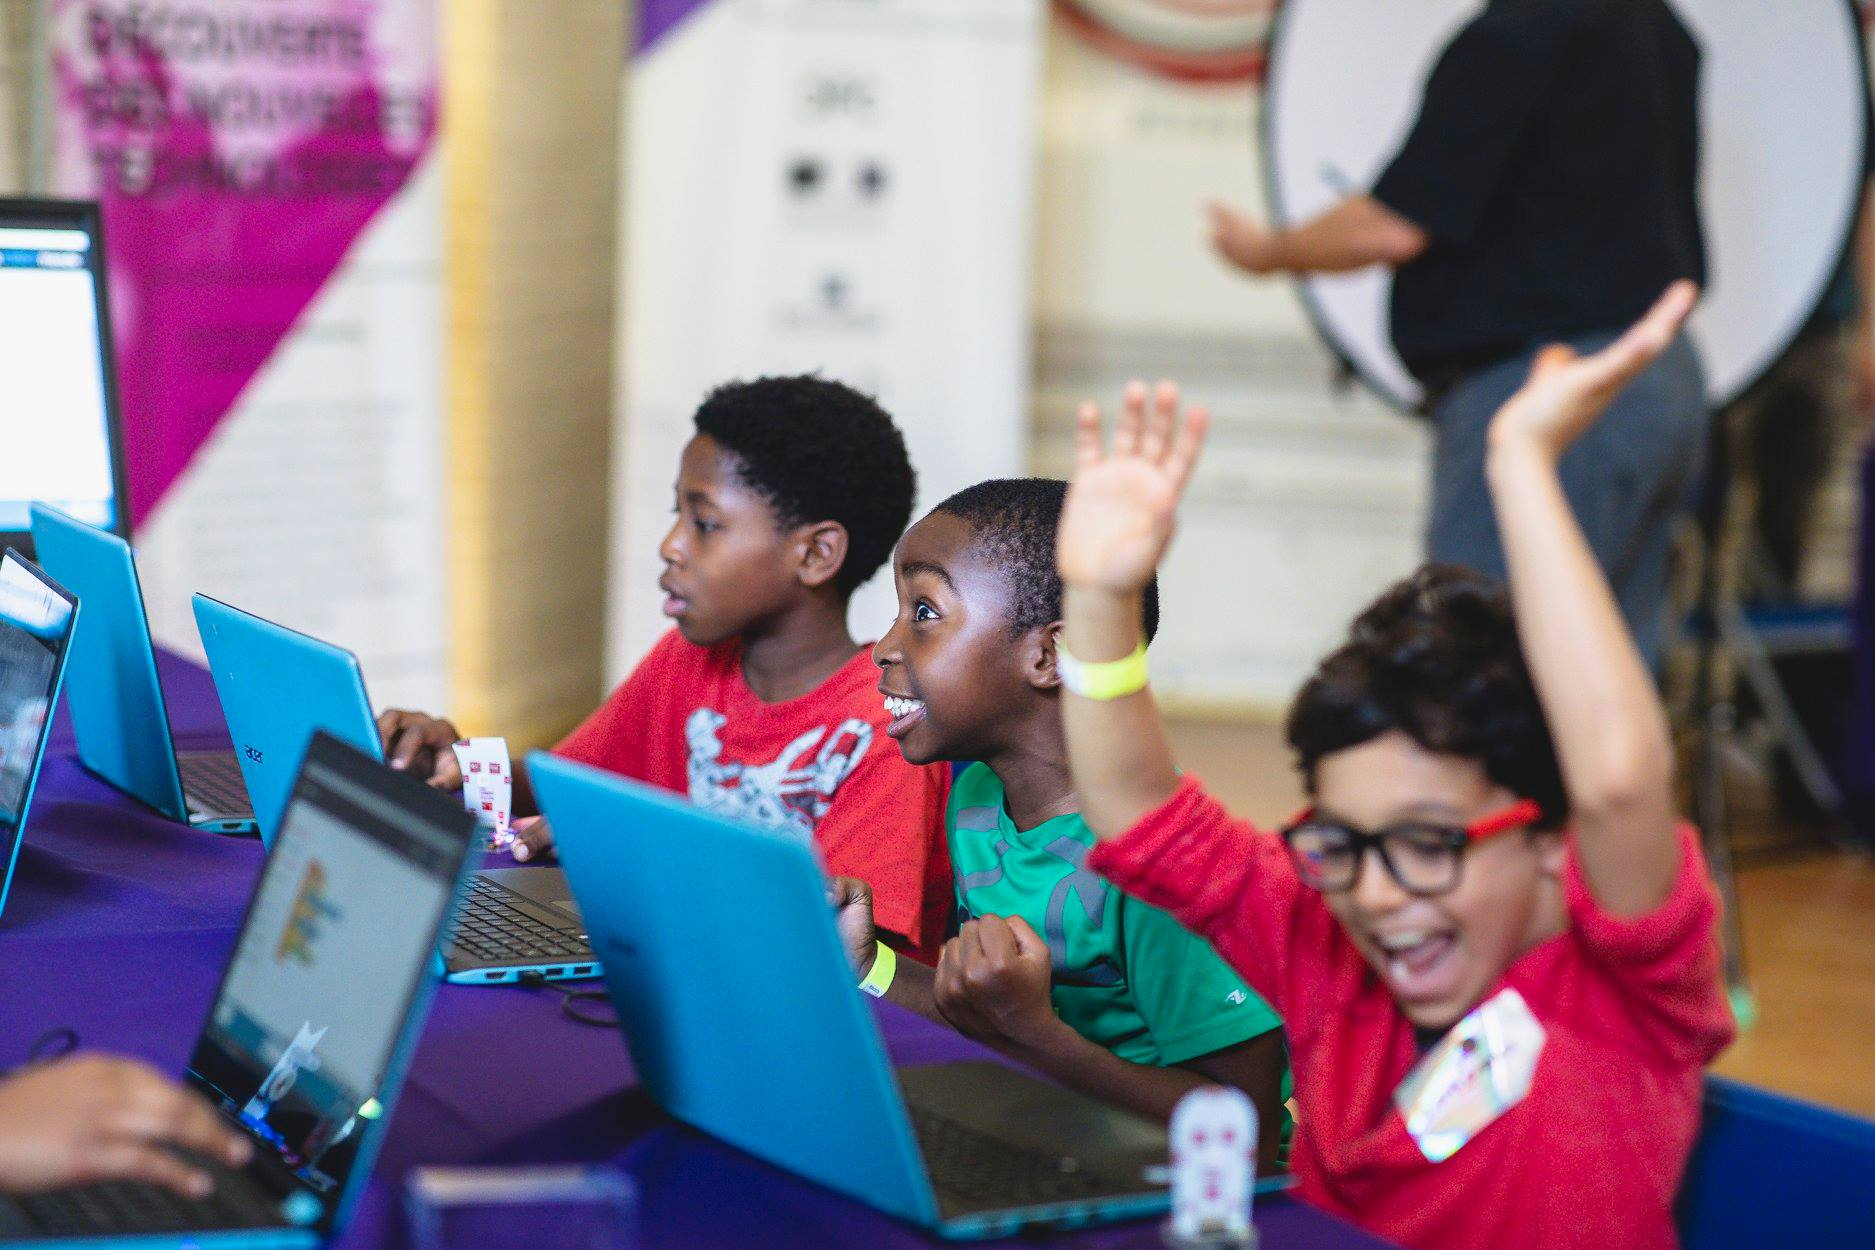 Three children sit at a table with laptops in front of them. The child sitting in the middle is smiling widely and the boy next to him is cheering with his arms in the air.